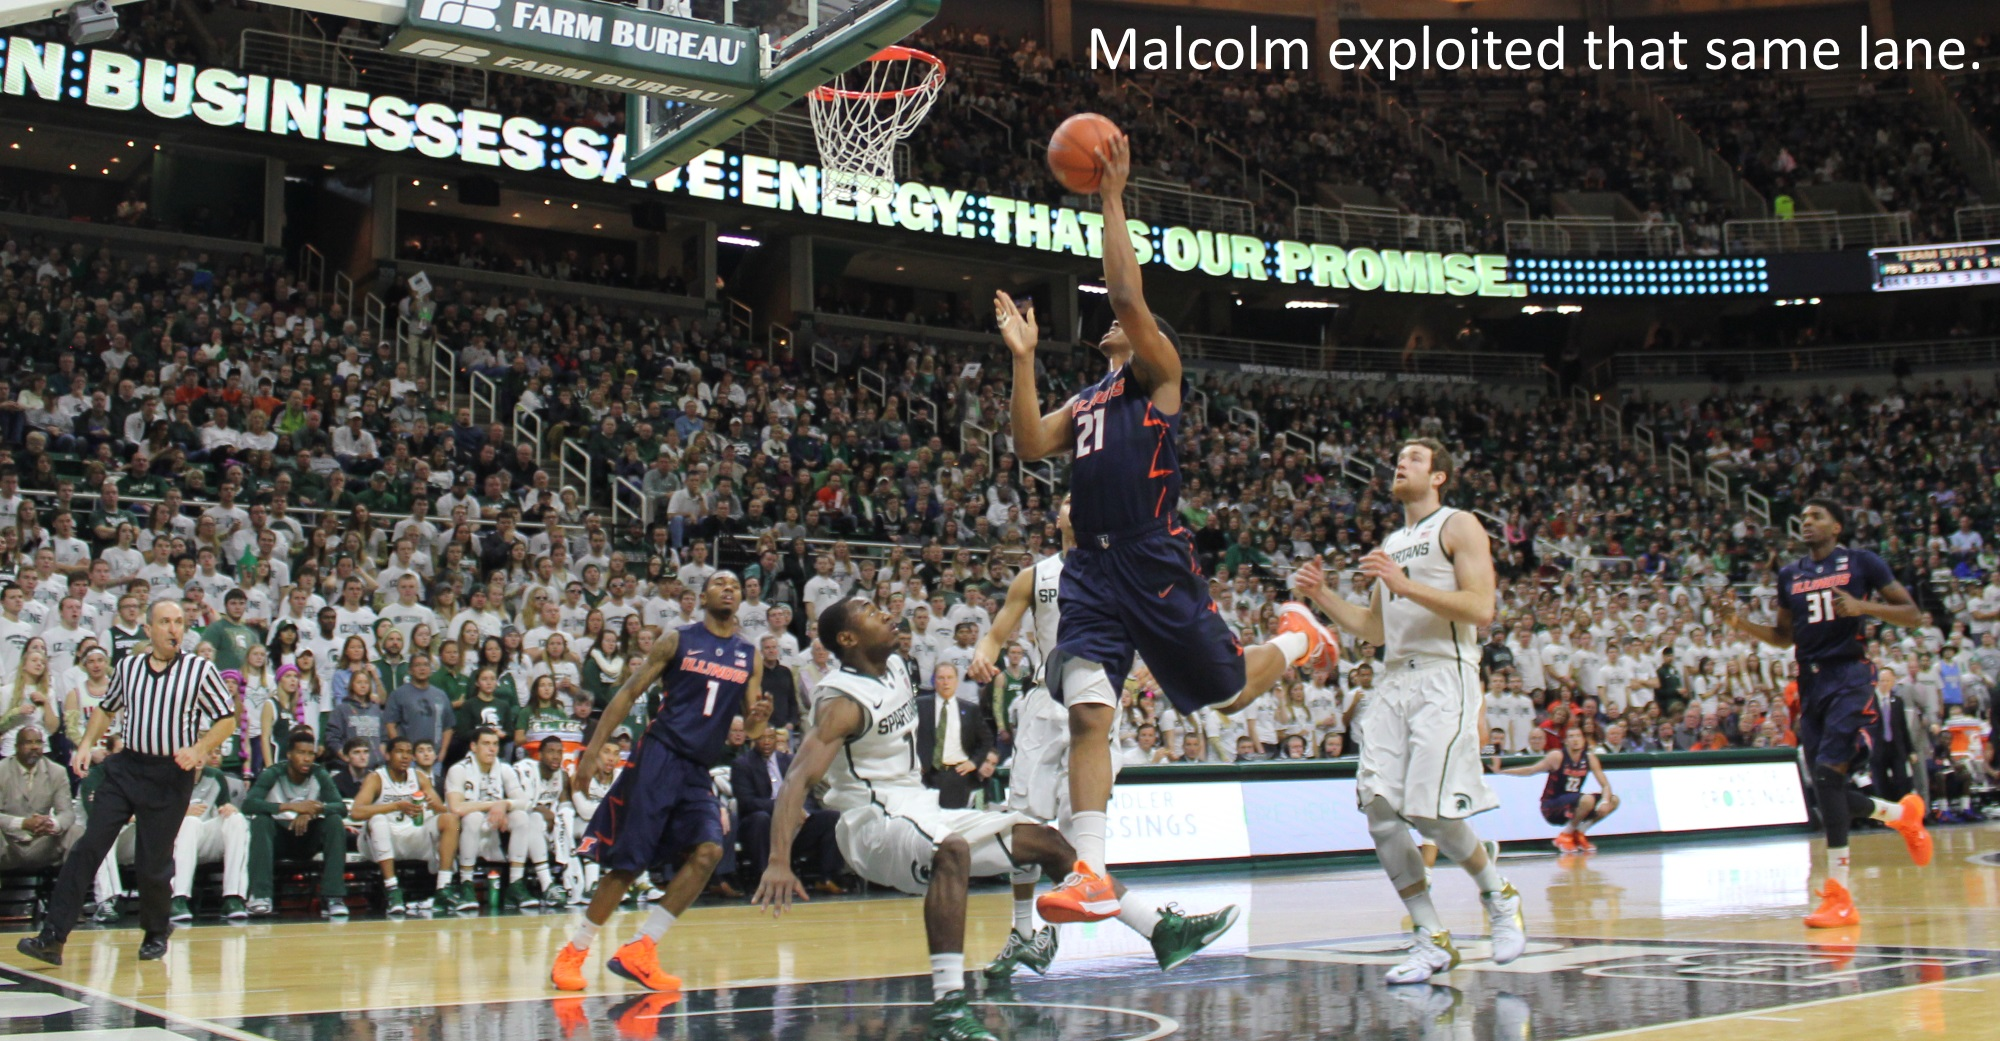 malcolm hill exploited that same lane